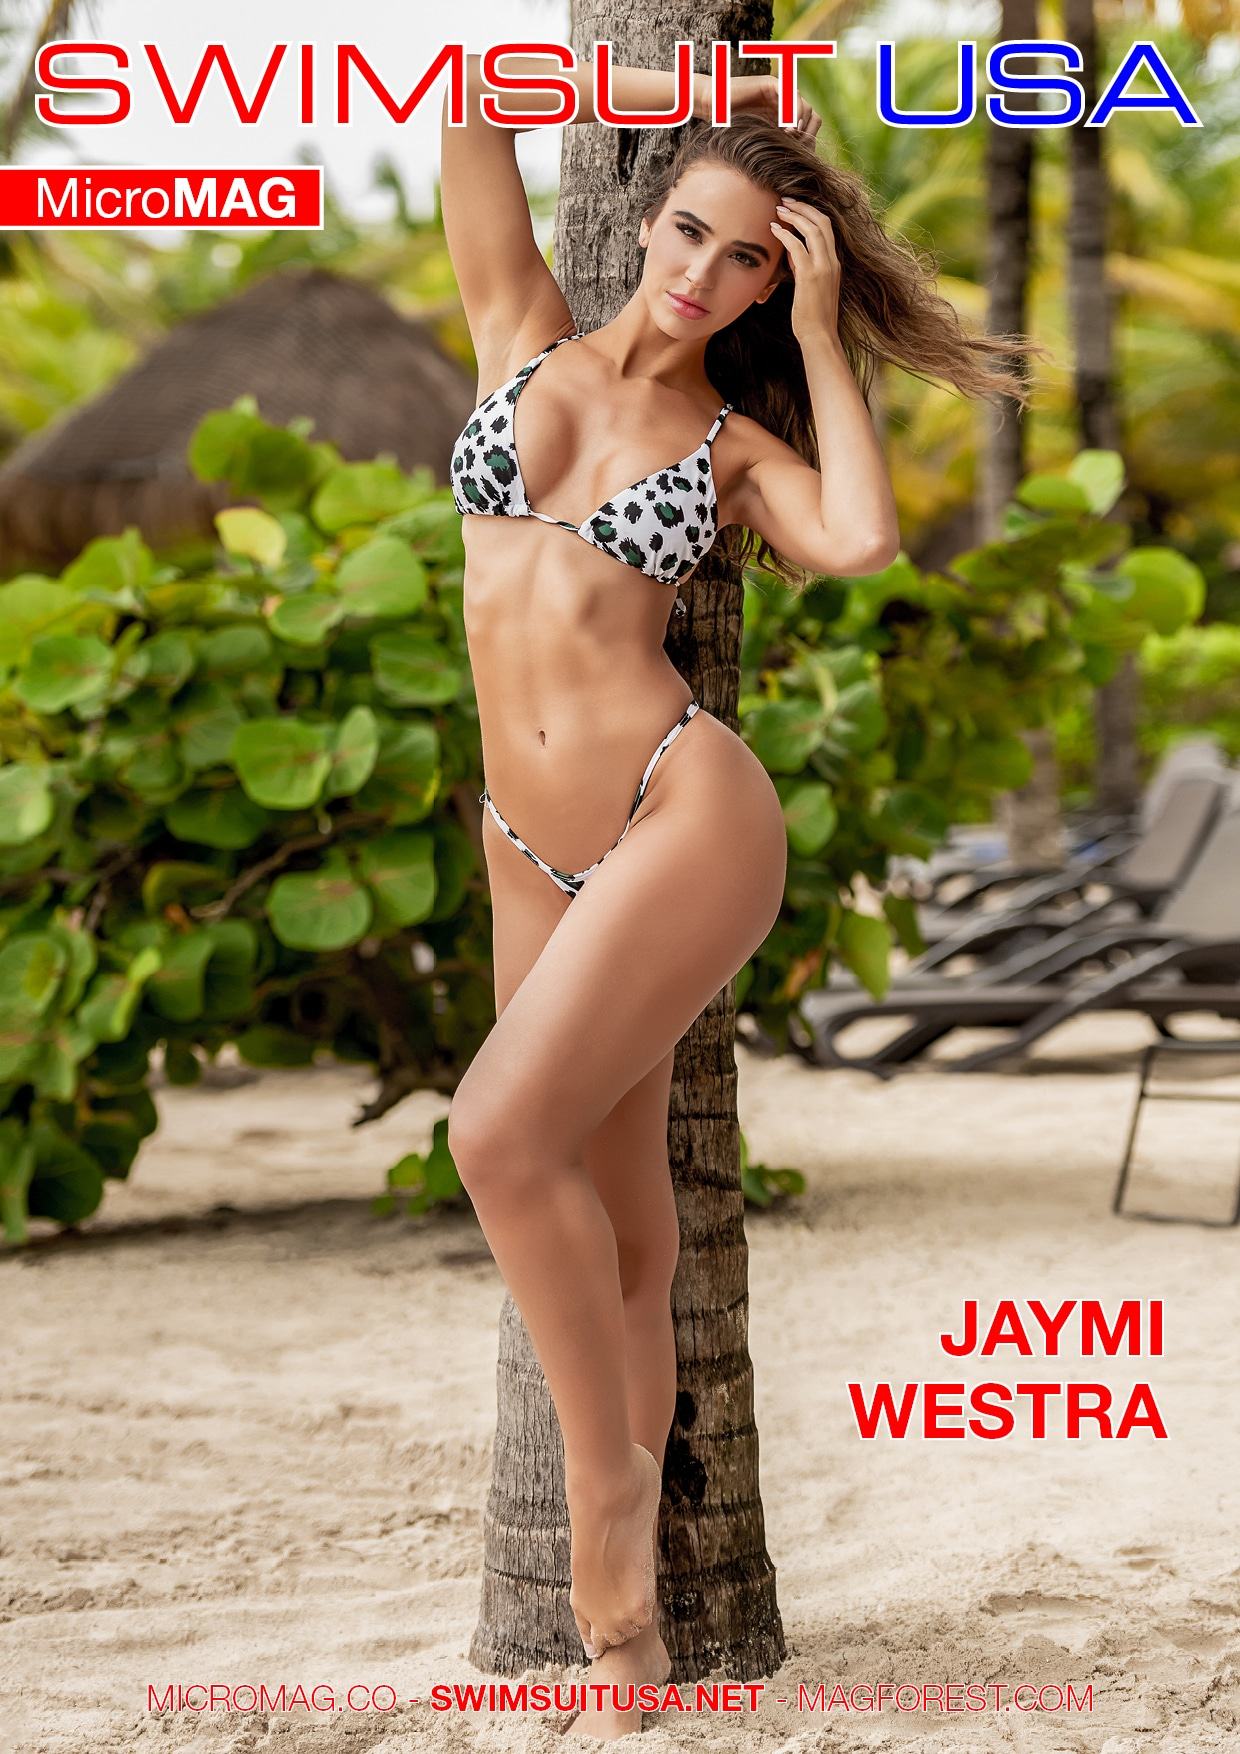 Swimsuit USA MicroMAG - Jaymi Westra - Issue 2 1